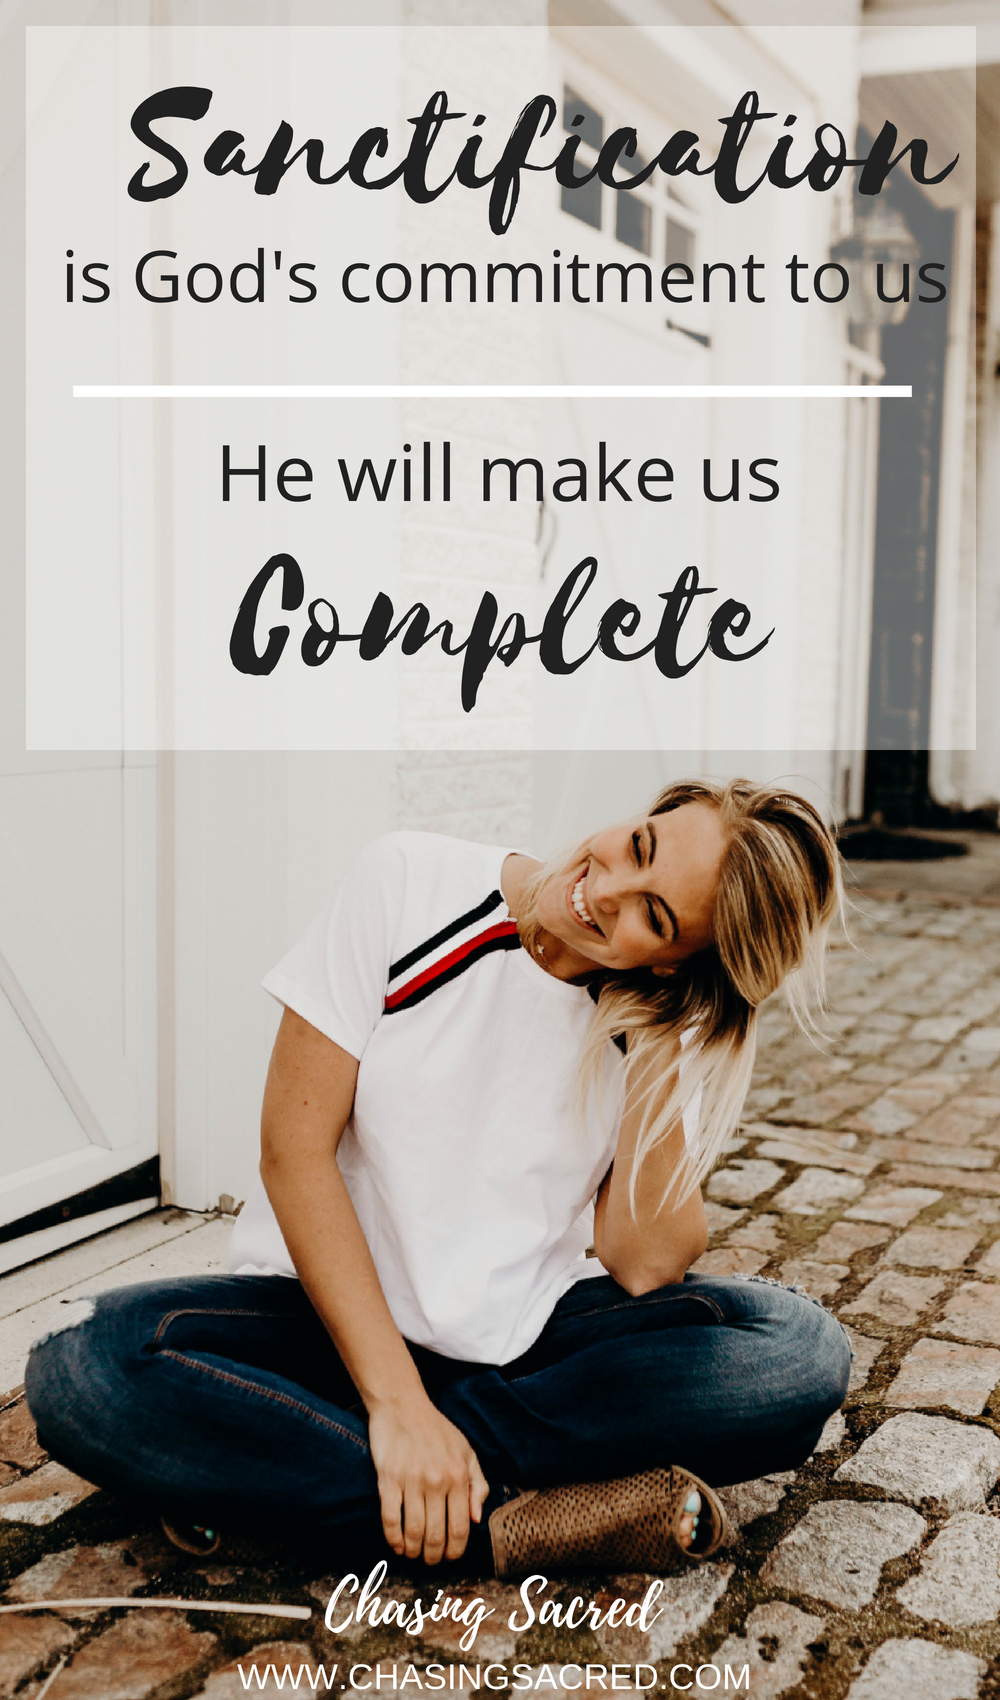 Sanctification is God's commitment to us - He will make us complete